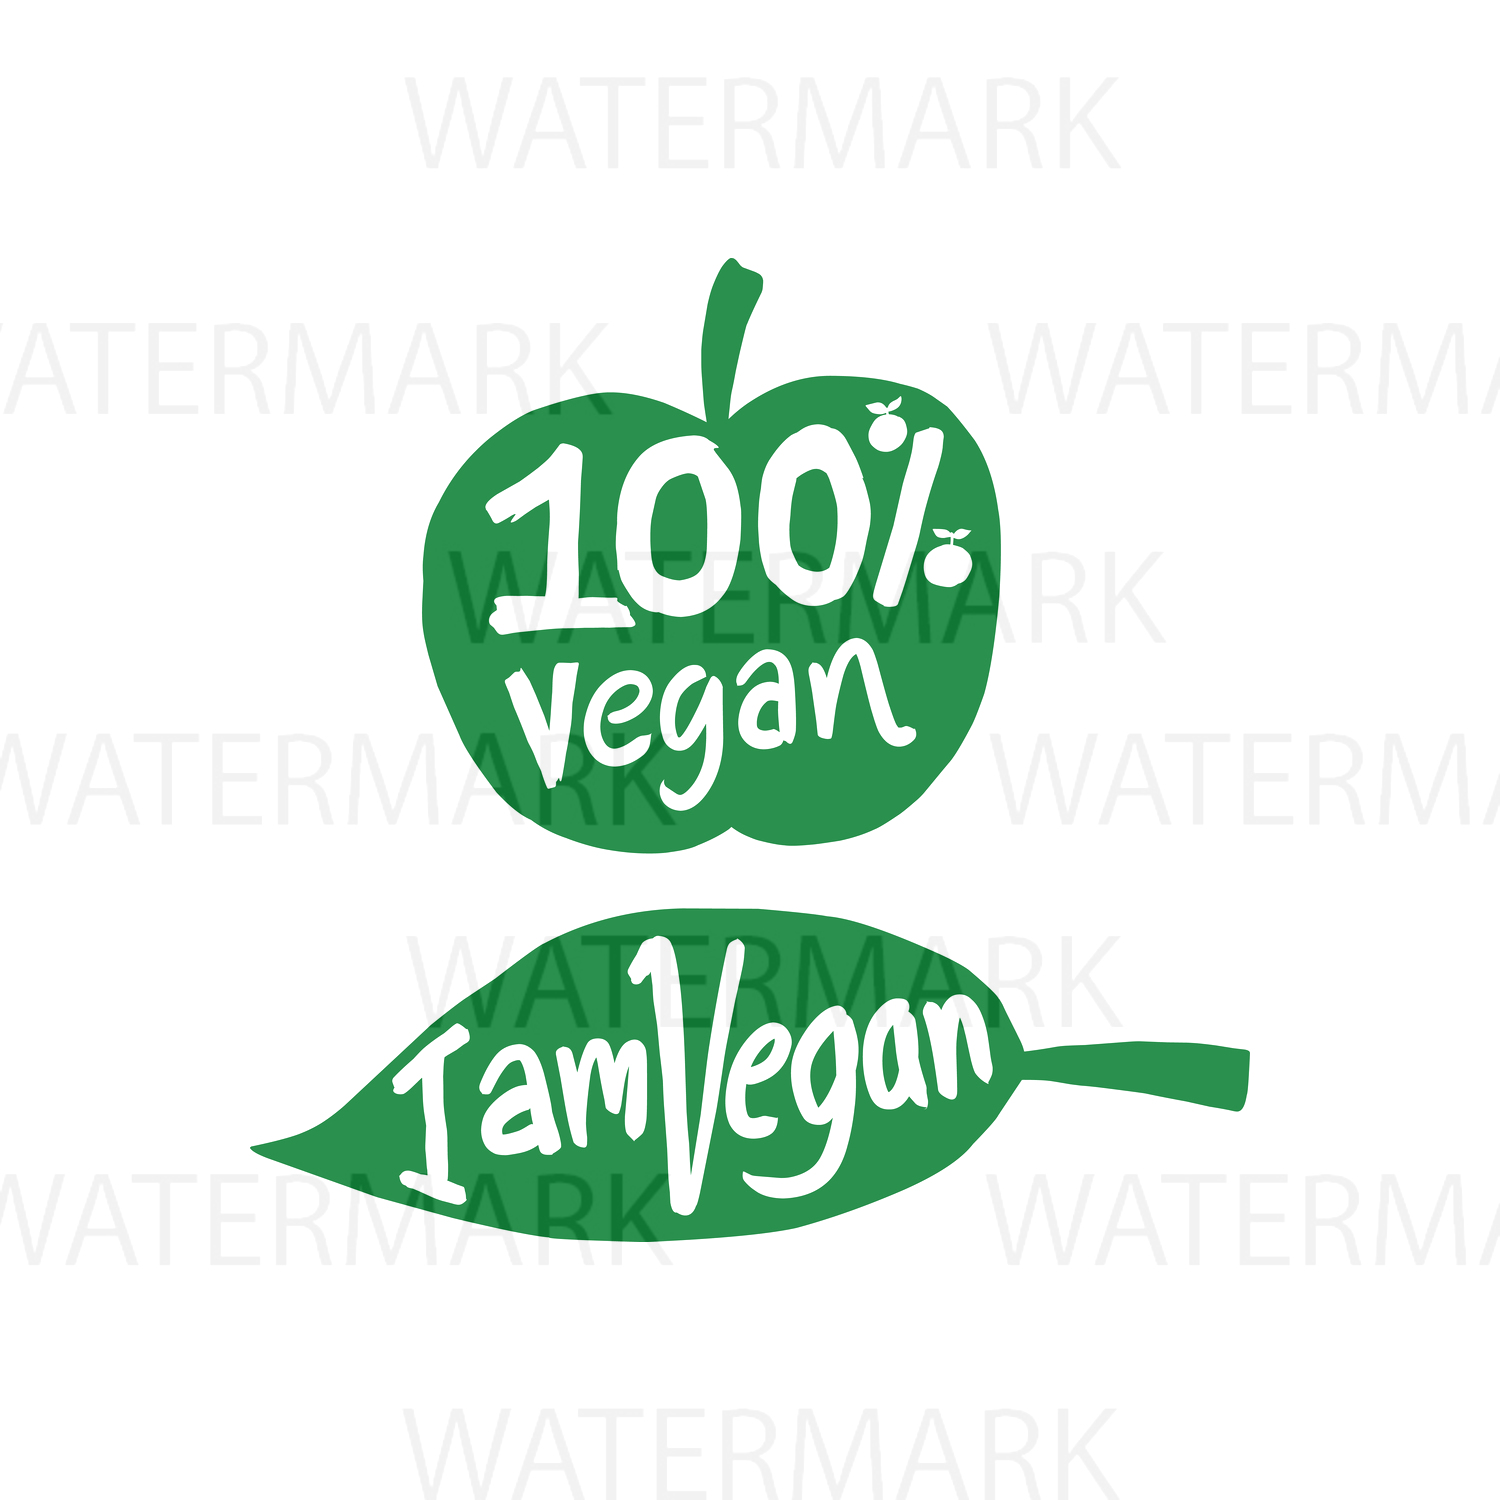 100% Vegan and I am vegan - SVG/JPG/PNG - Hand Drawing example image 1